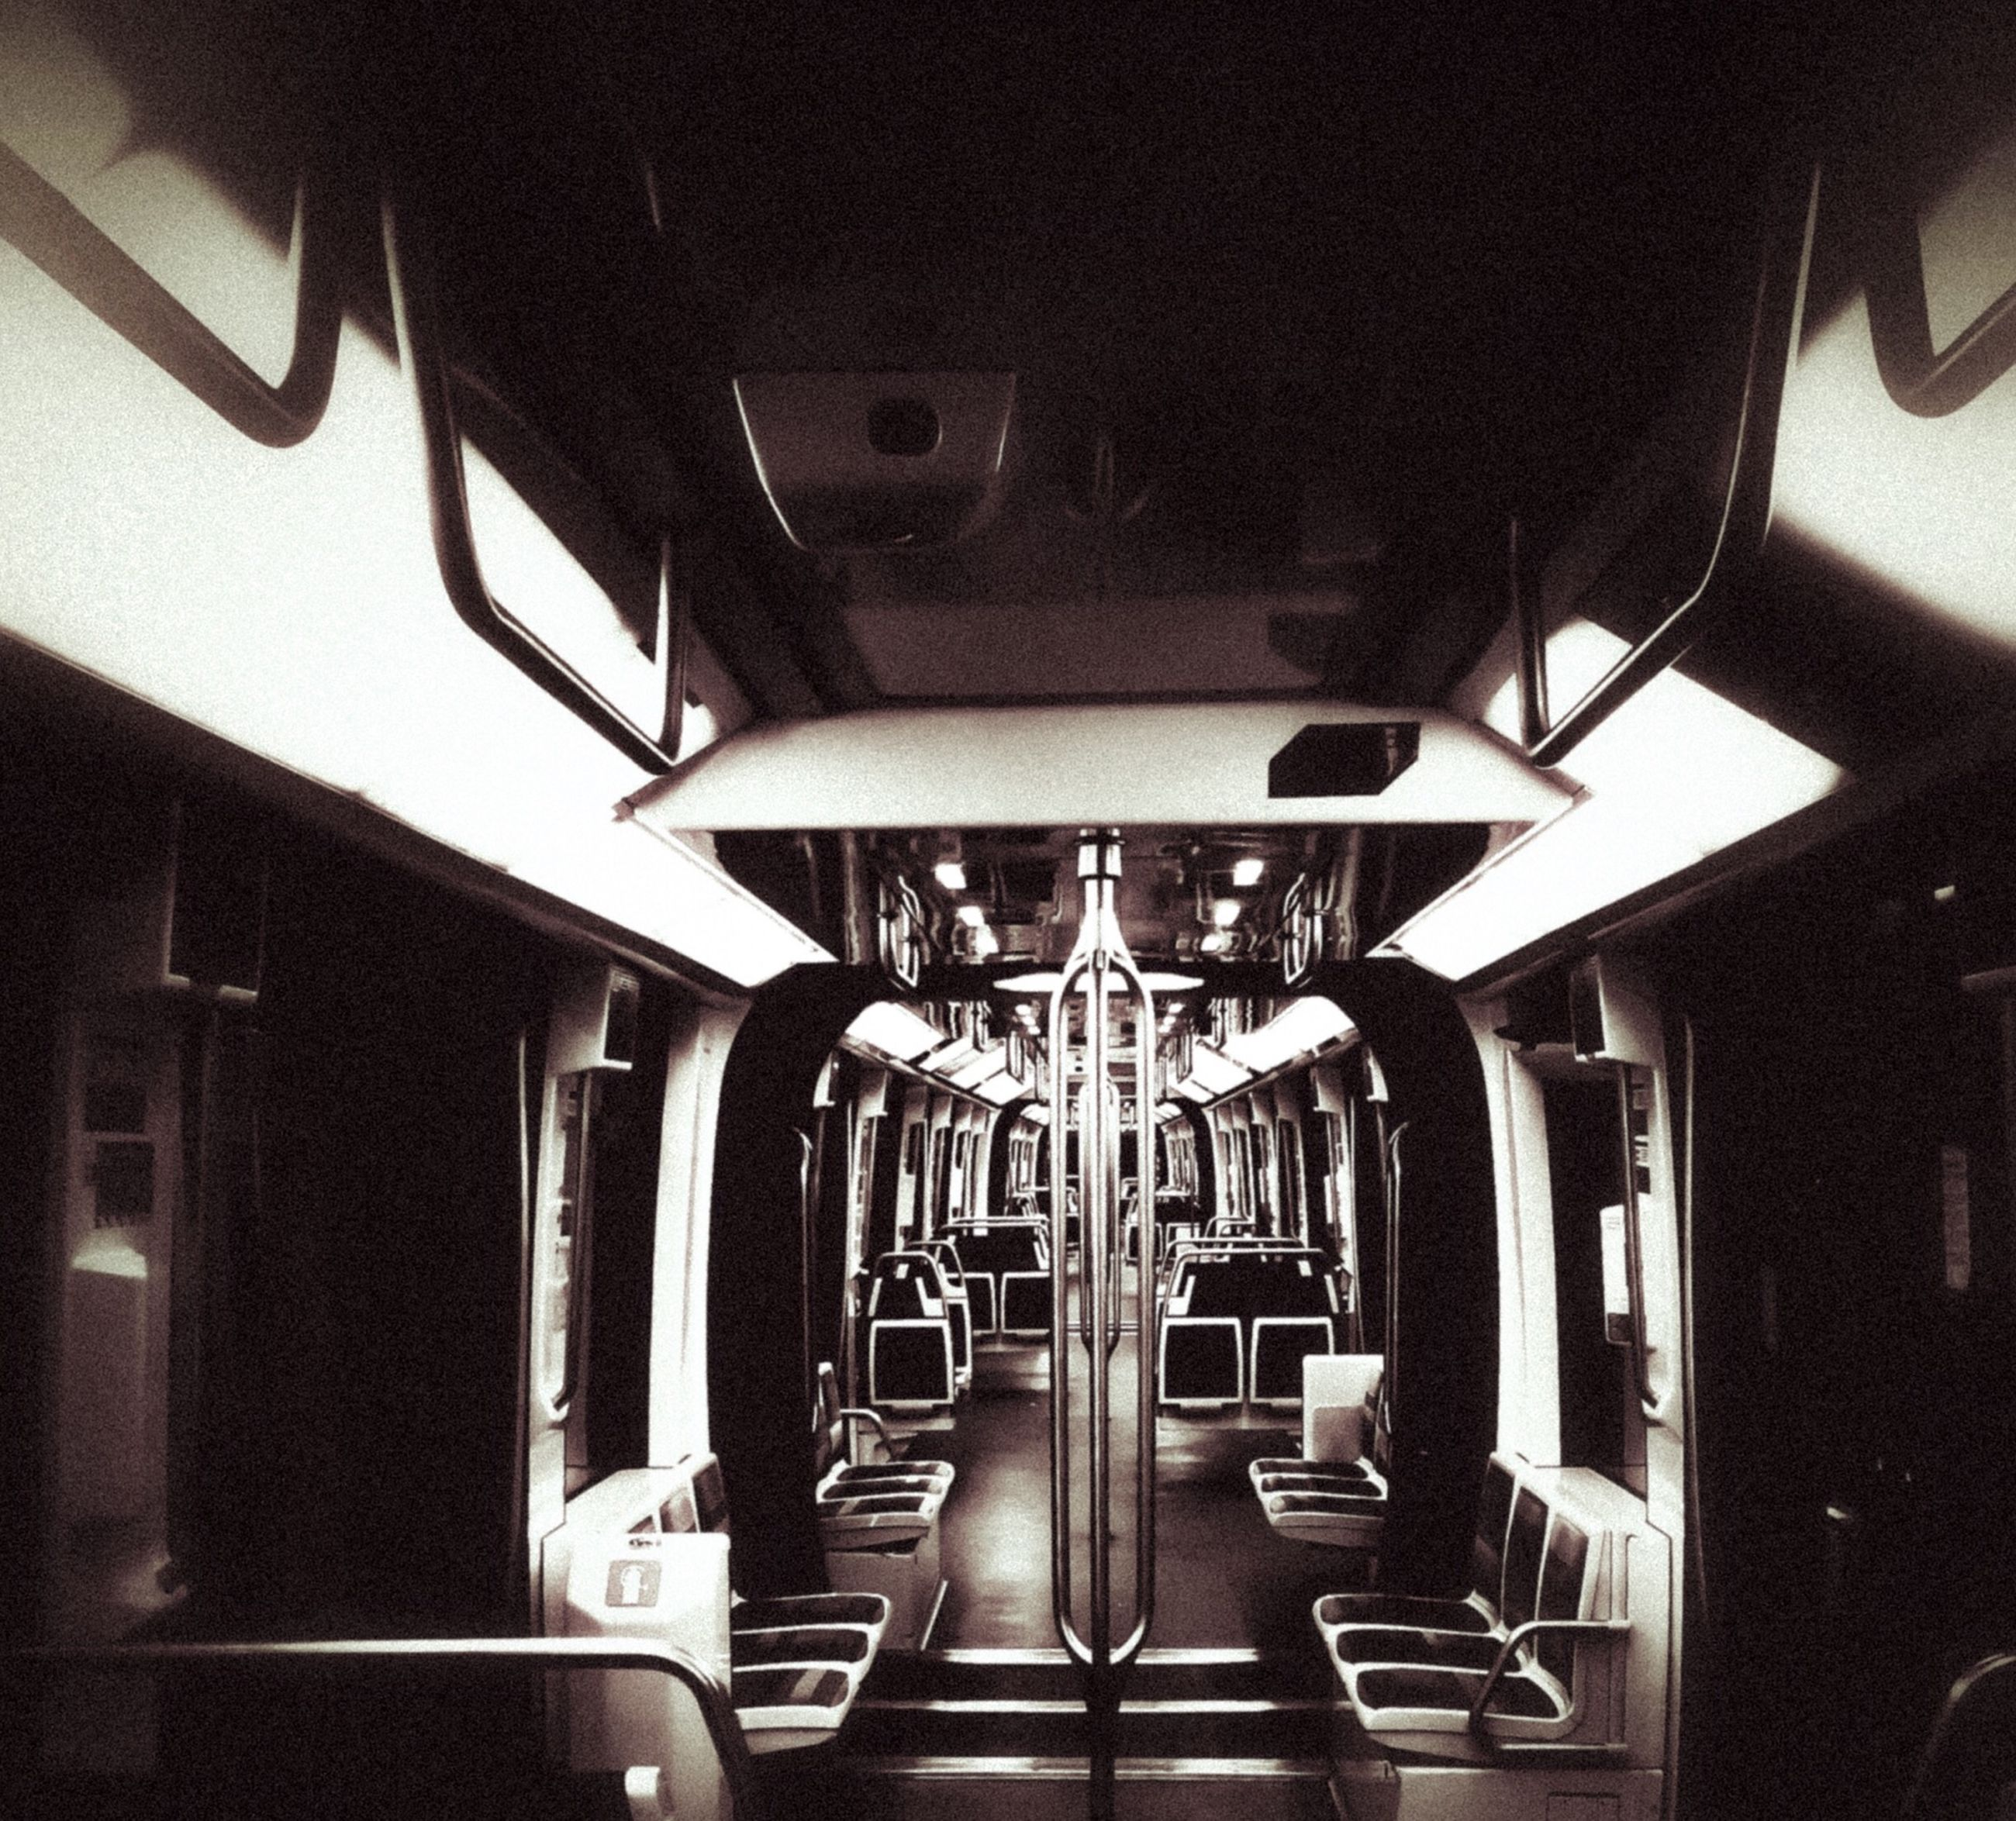 indoors, transportation, architecture, illuminated, built structure, mode of transport, absence, empty, lighting equipment, land vehicle, no people, ceiling, the way forward, car, stationary, incidental people, building, public transportation, travel, day